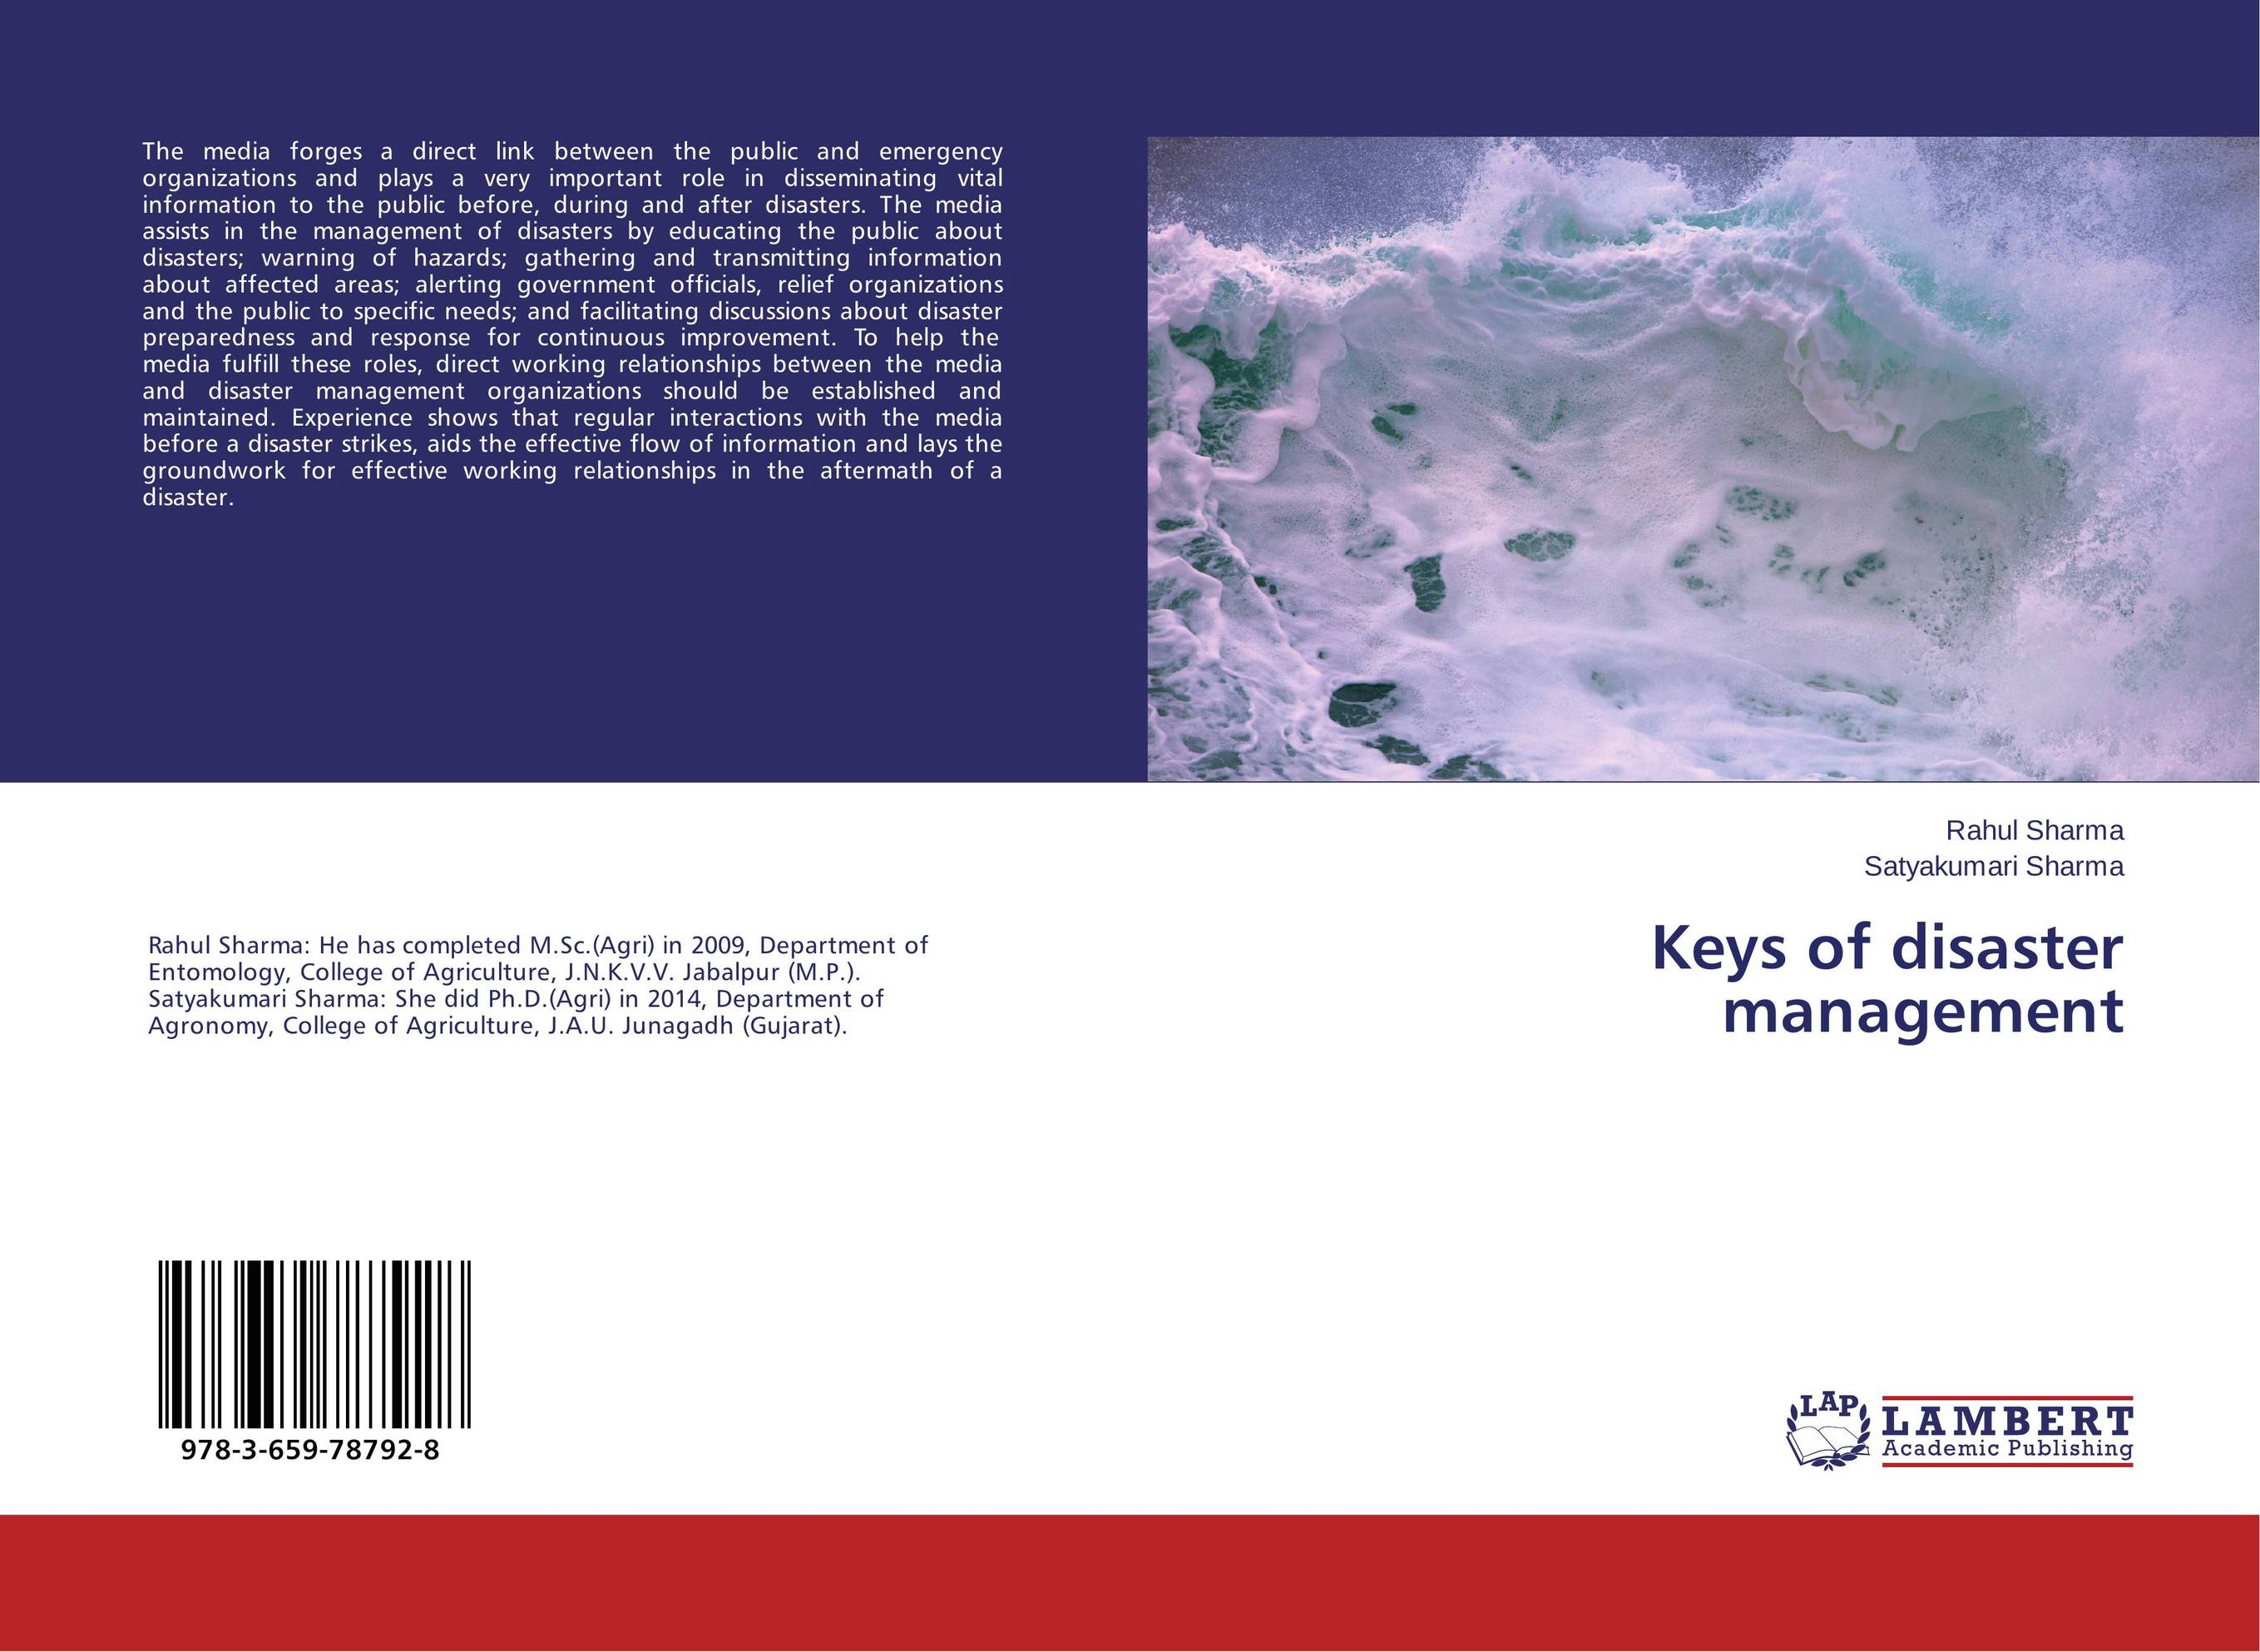 Keys of disaster management critical information assets disaster management audit model